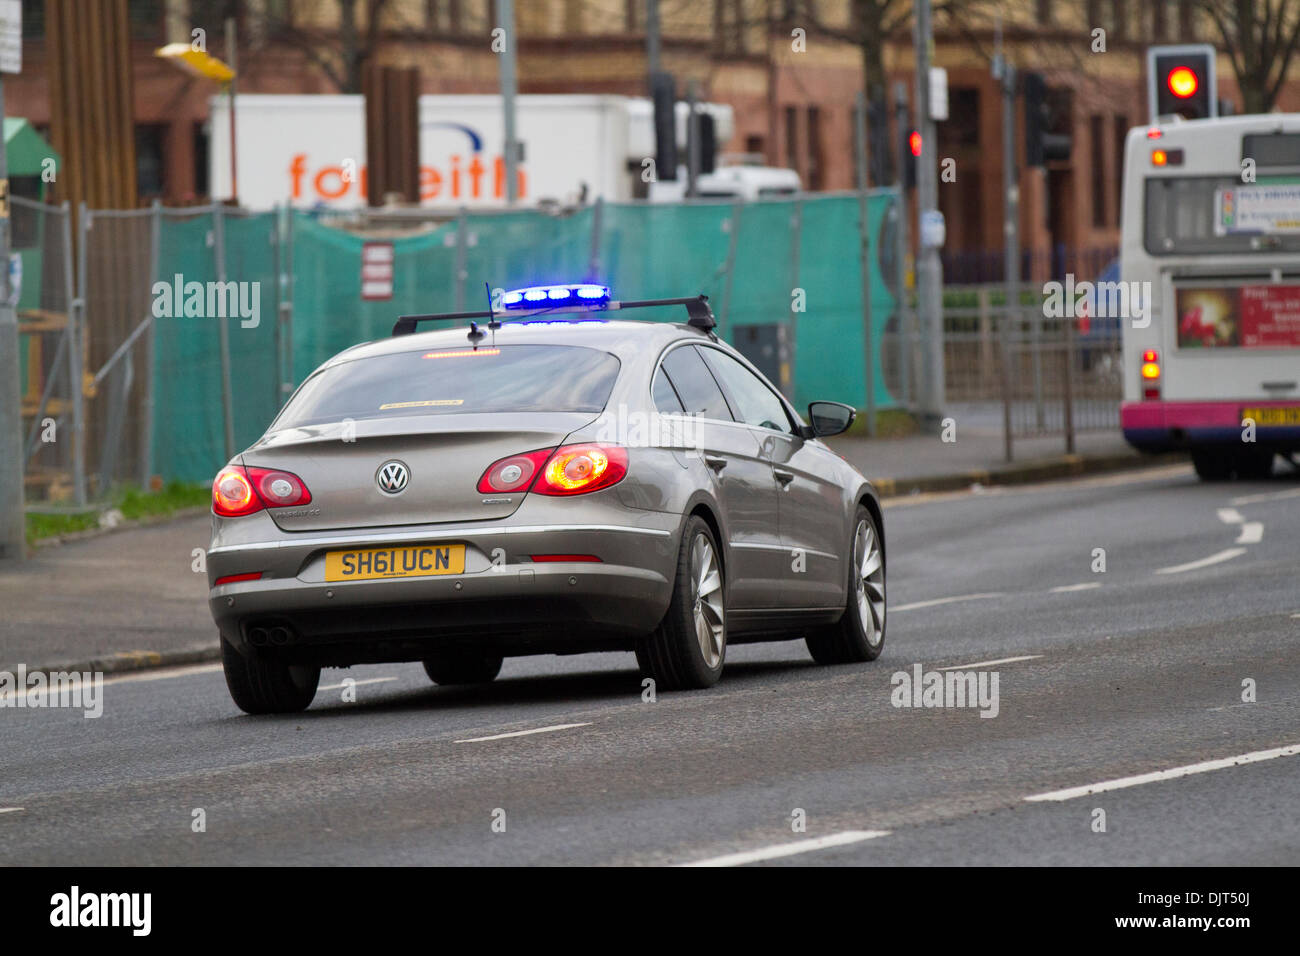 Unmarked Police Car Strathclyde Police Uk Speeding To A